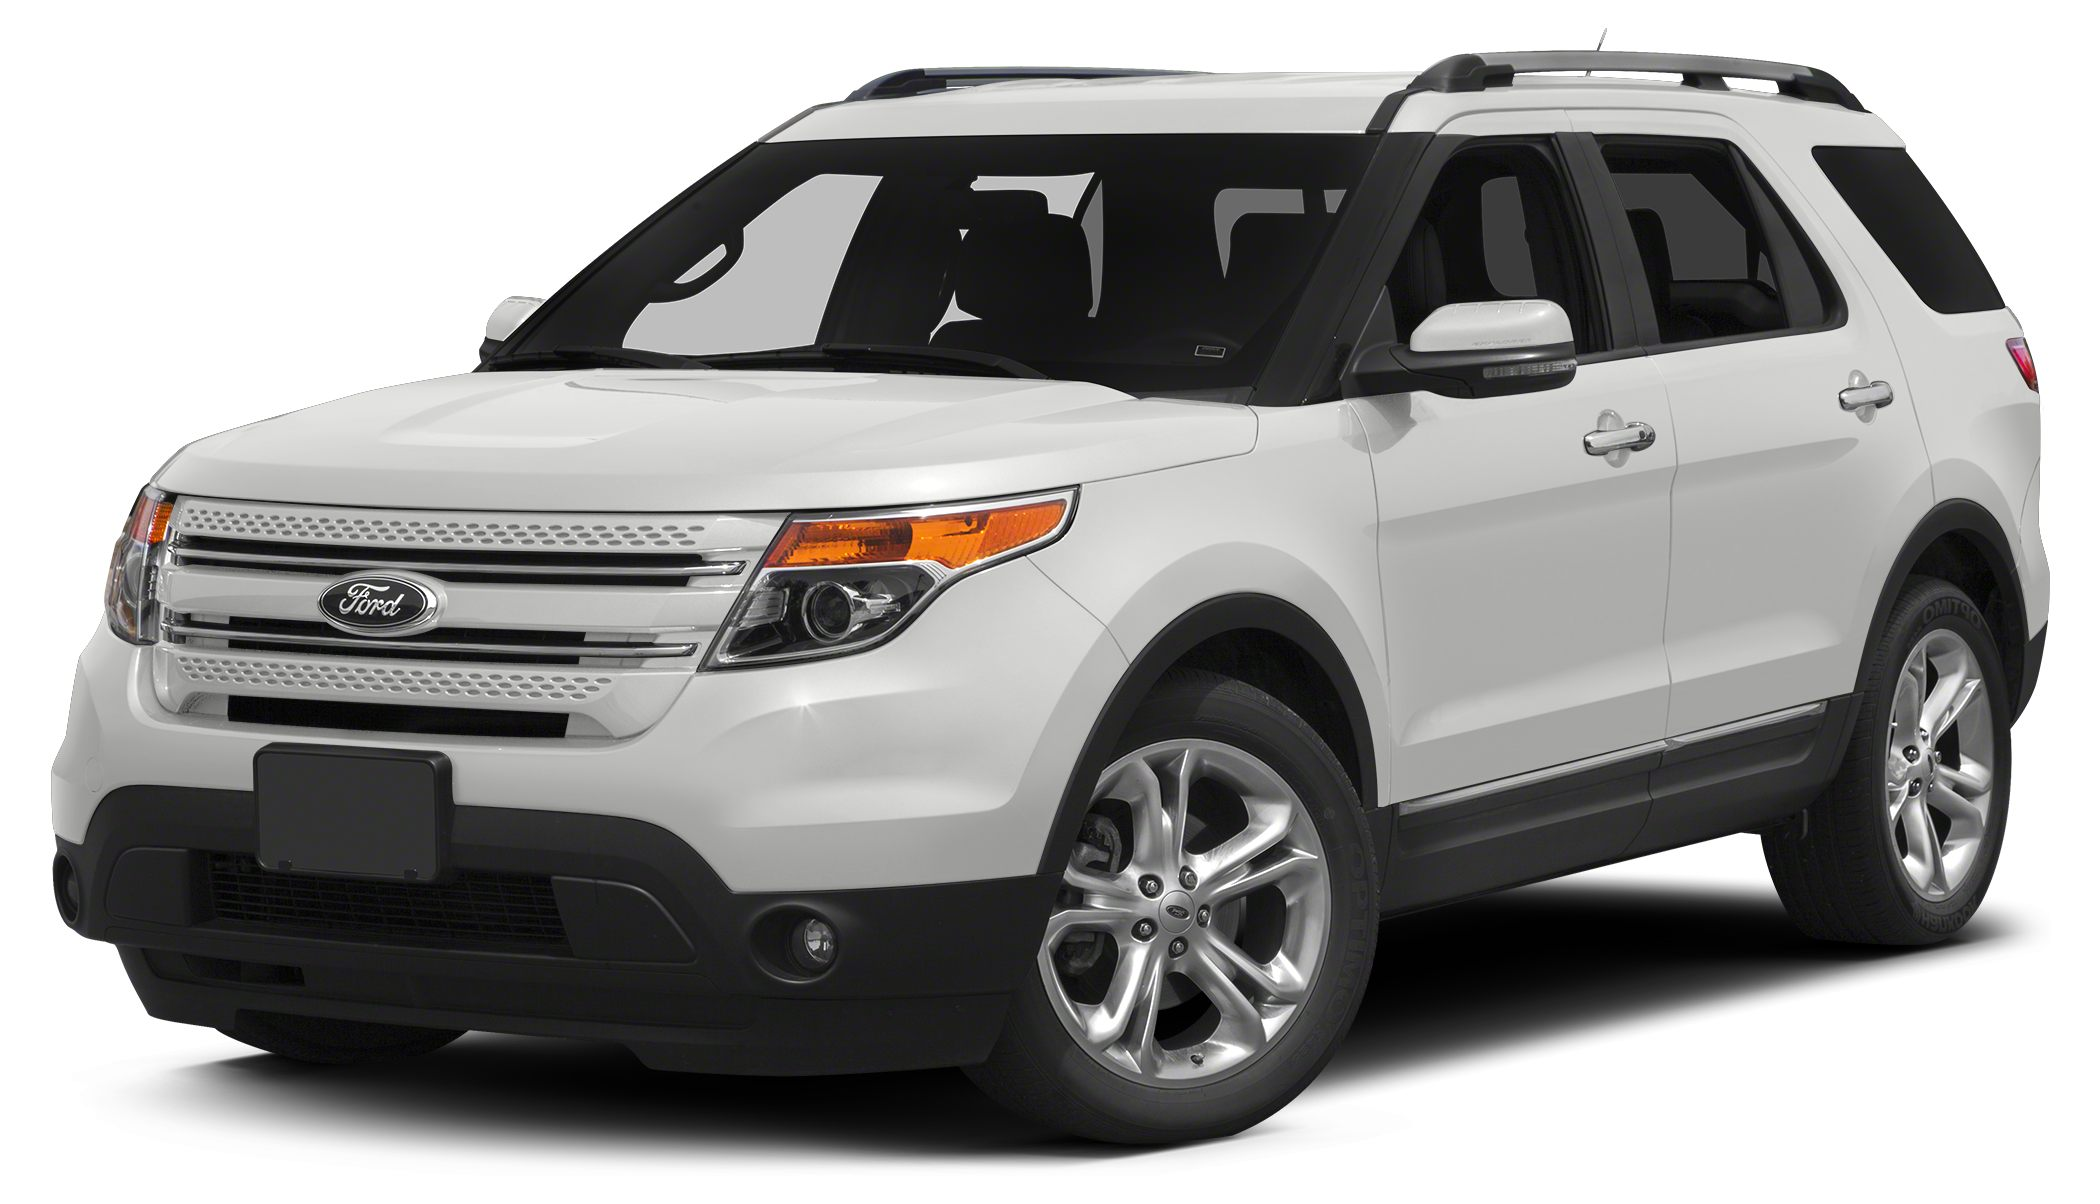 2014 Ford Explorer Limited 1200 below Kelley Blue Book CARFAX 1-Owner Heated Leather Seats Nav